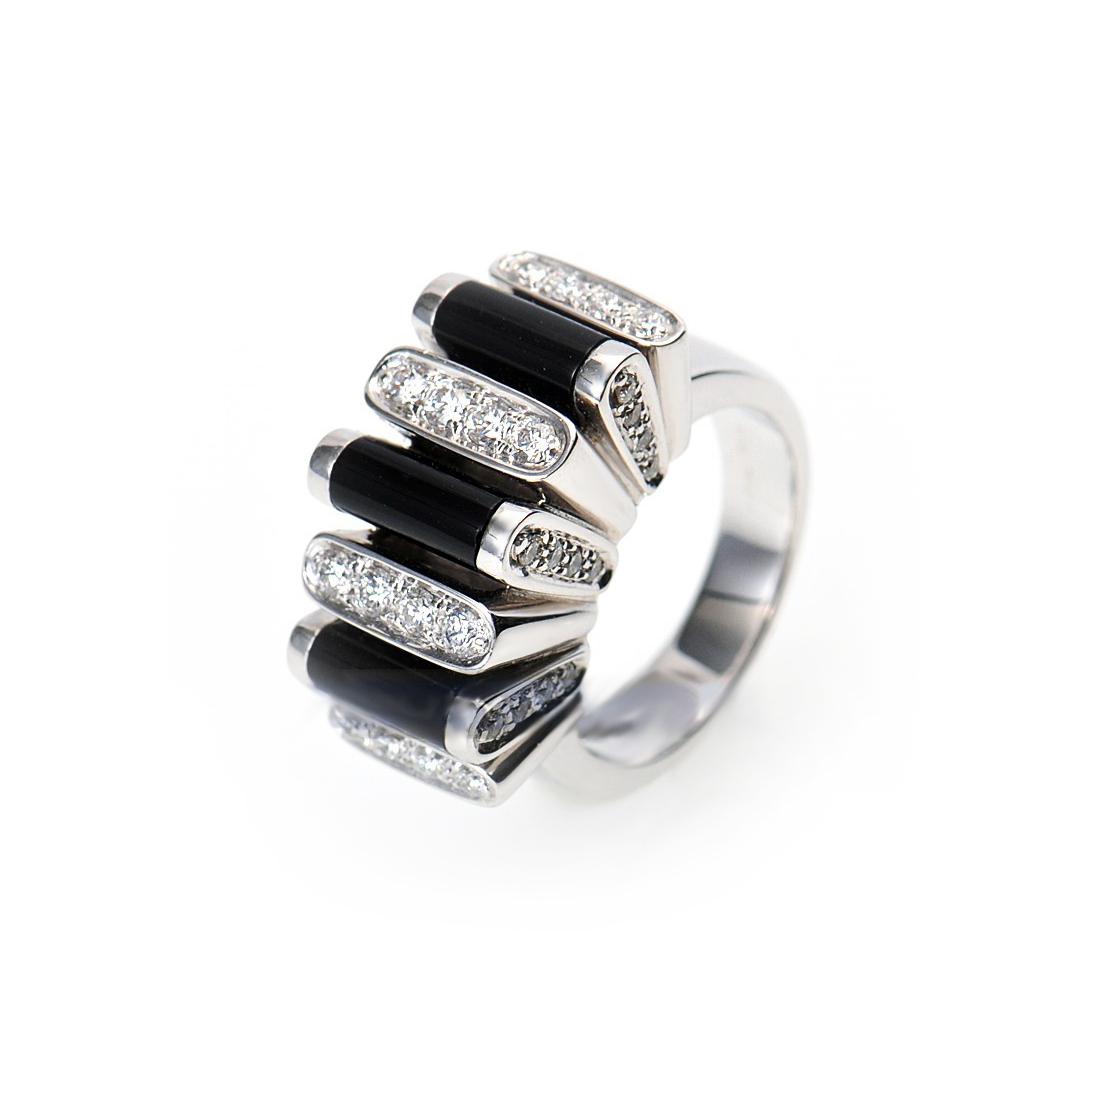 18K White Gold Micro Pave Diamond & Onyx Ring